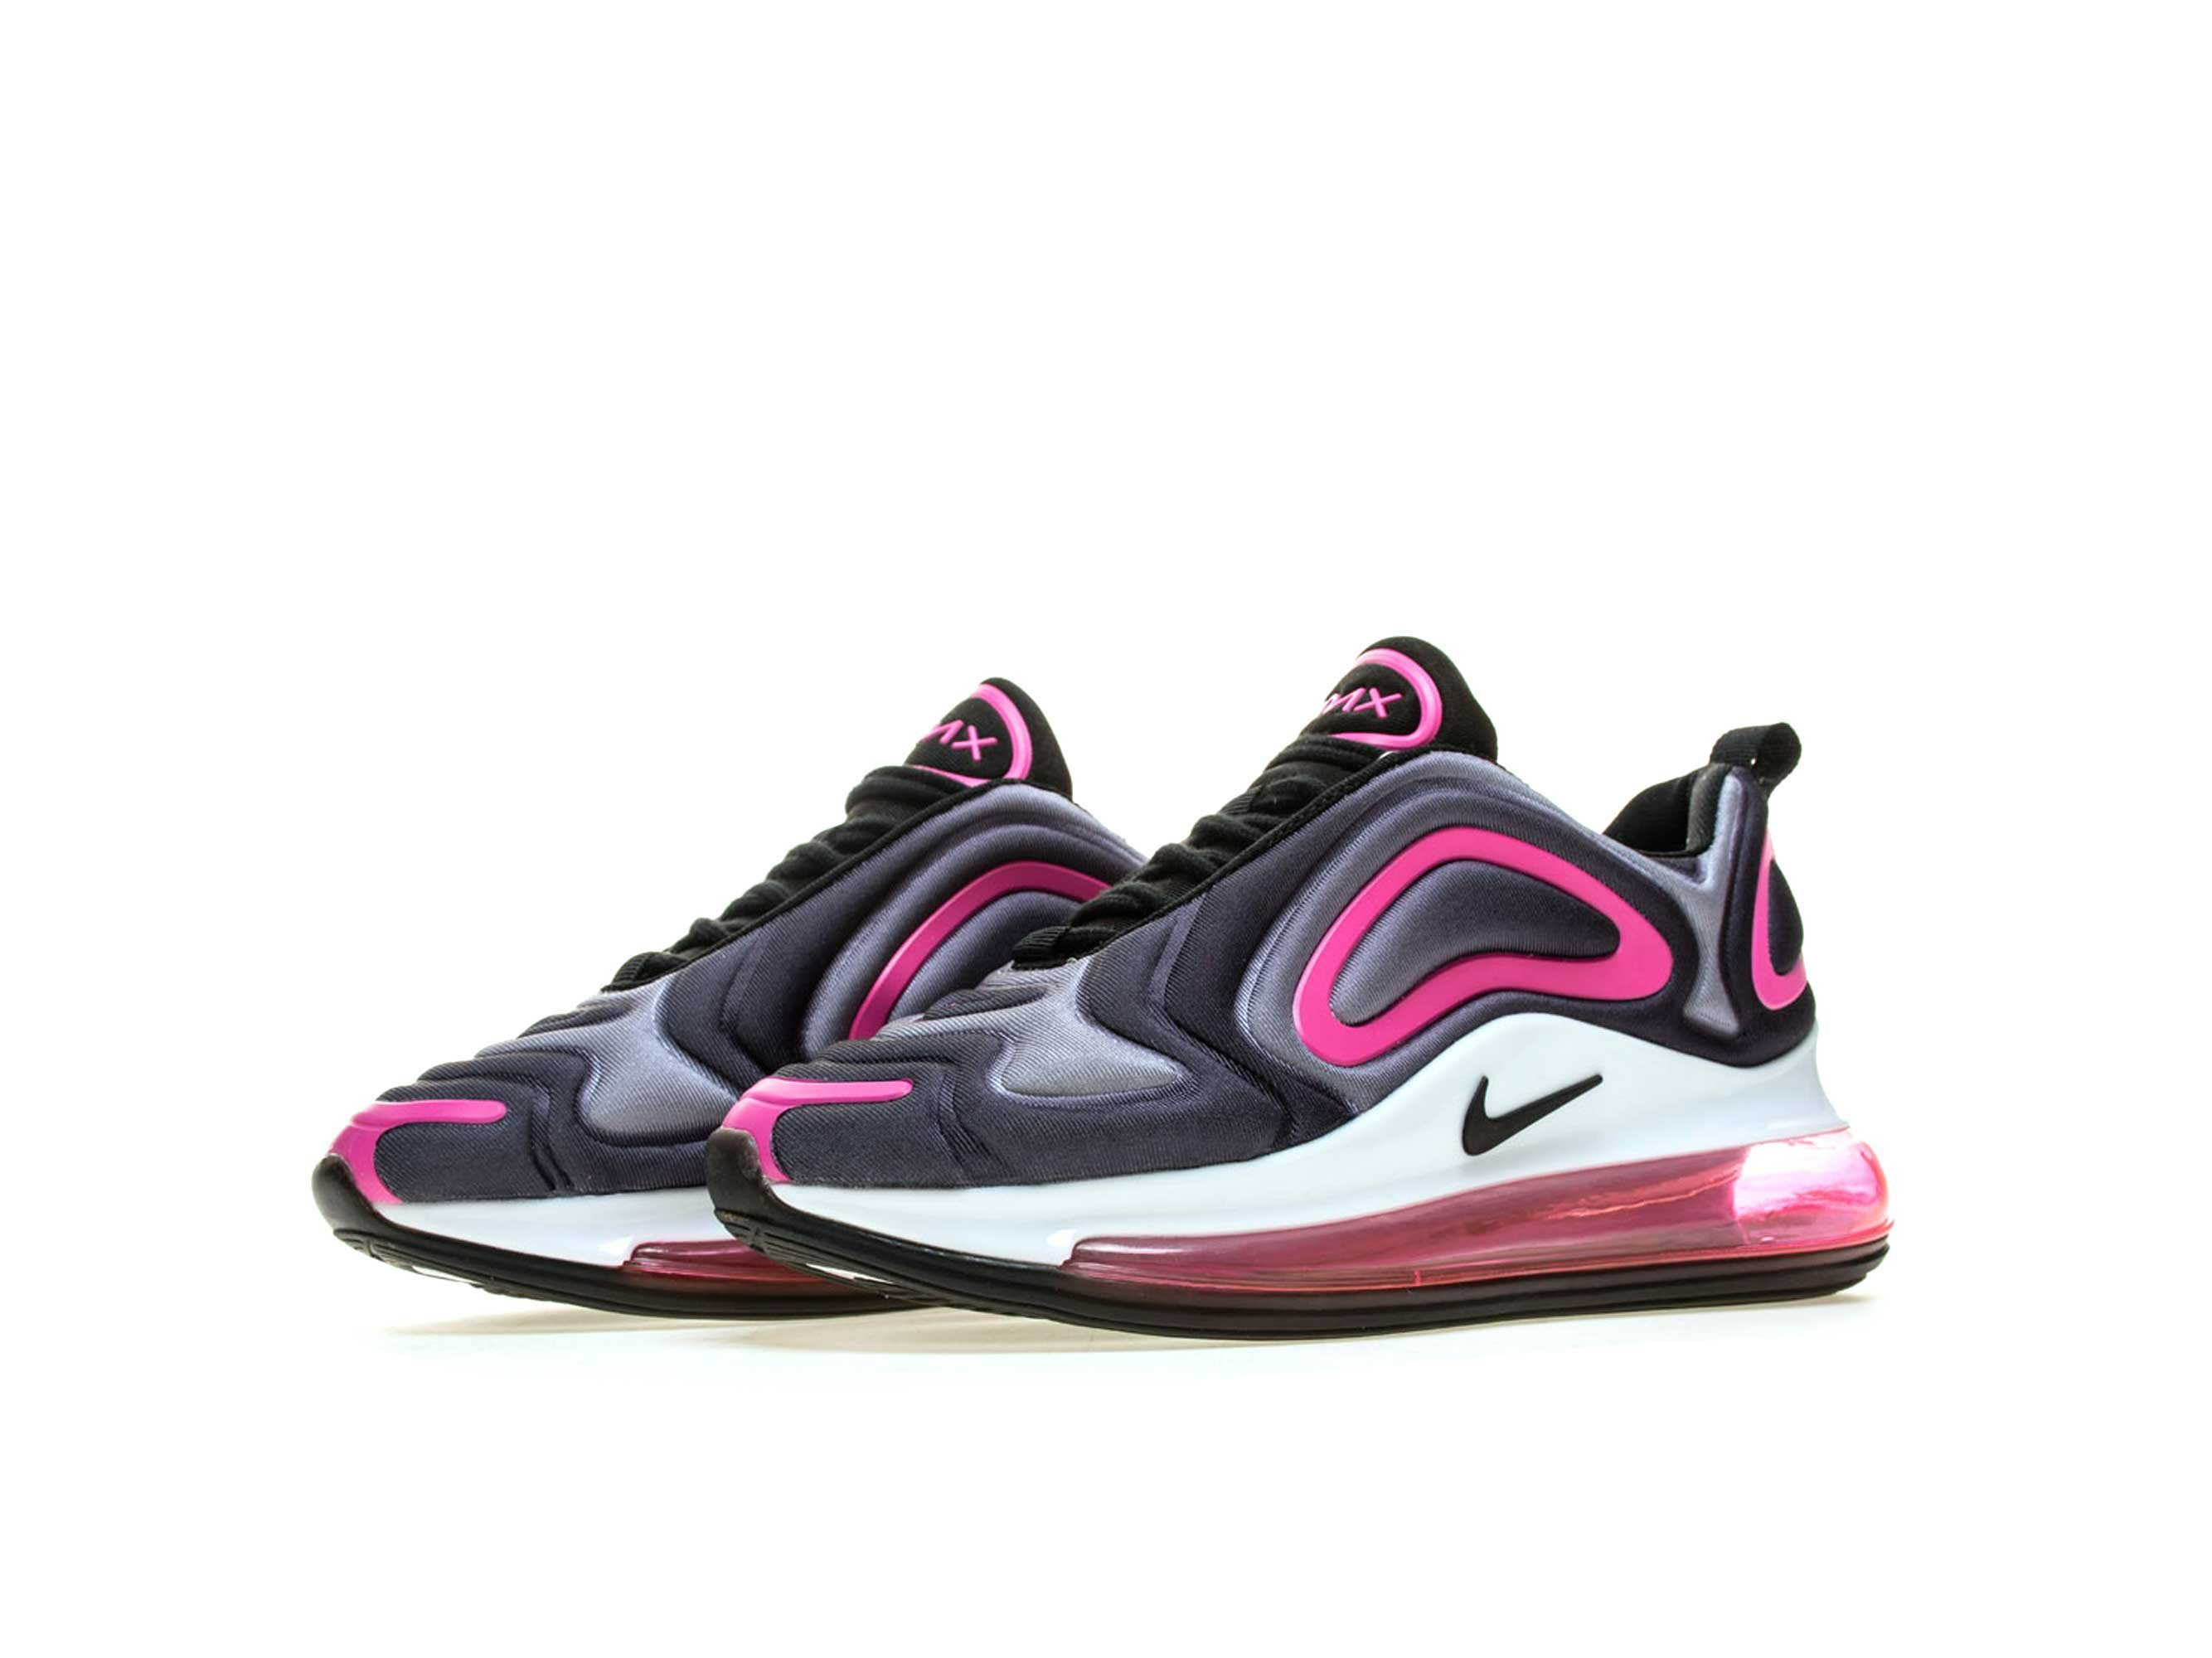 nike air max 720 black peach AR9293_006 купить